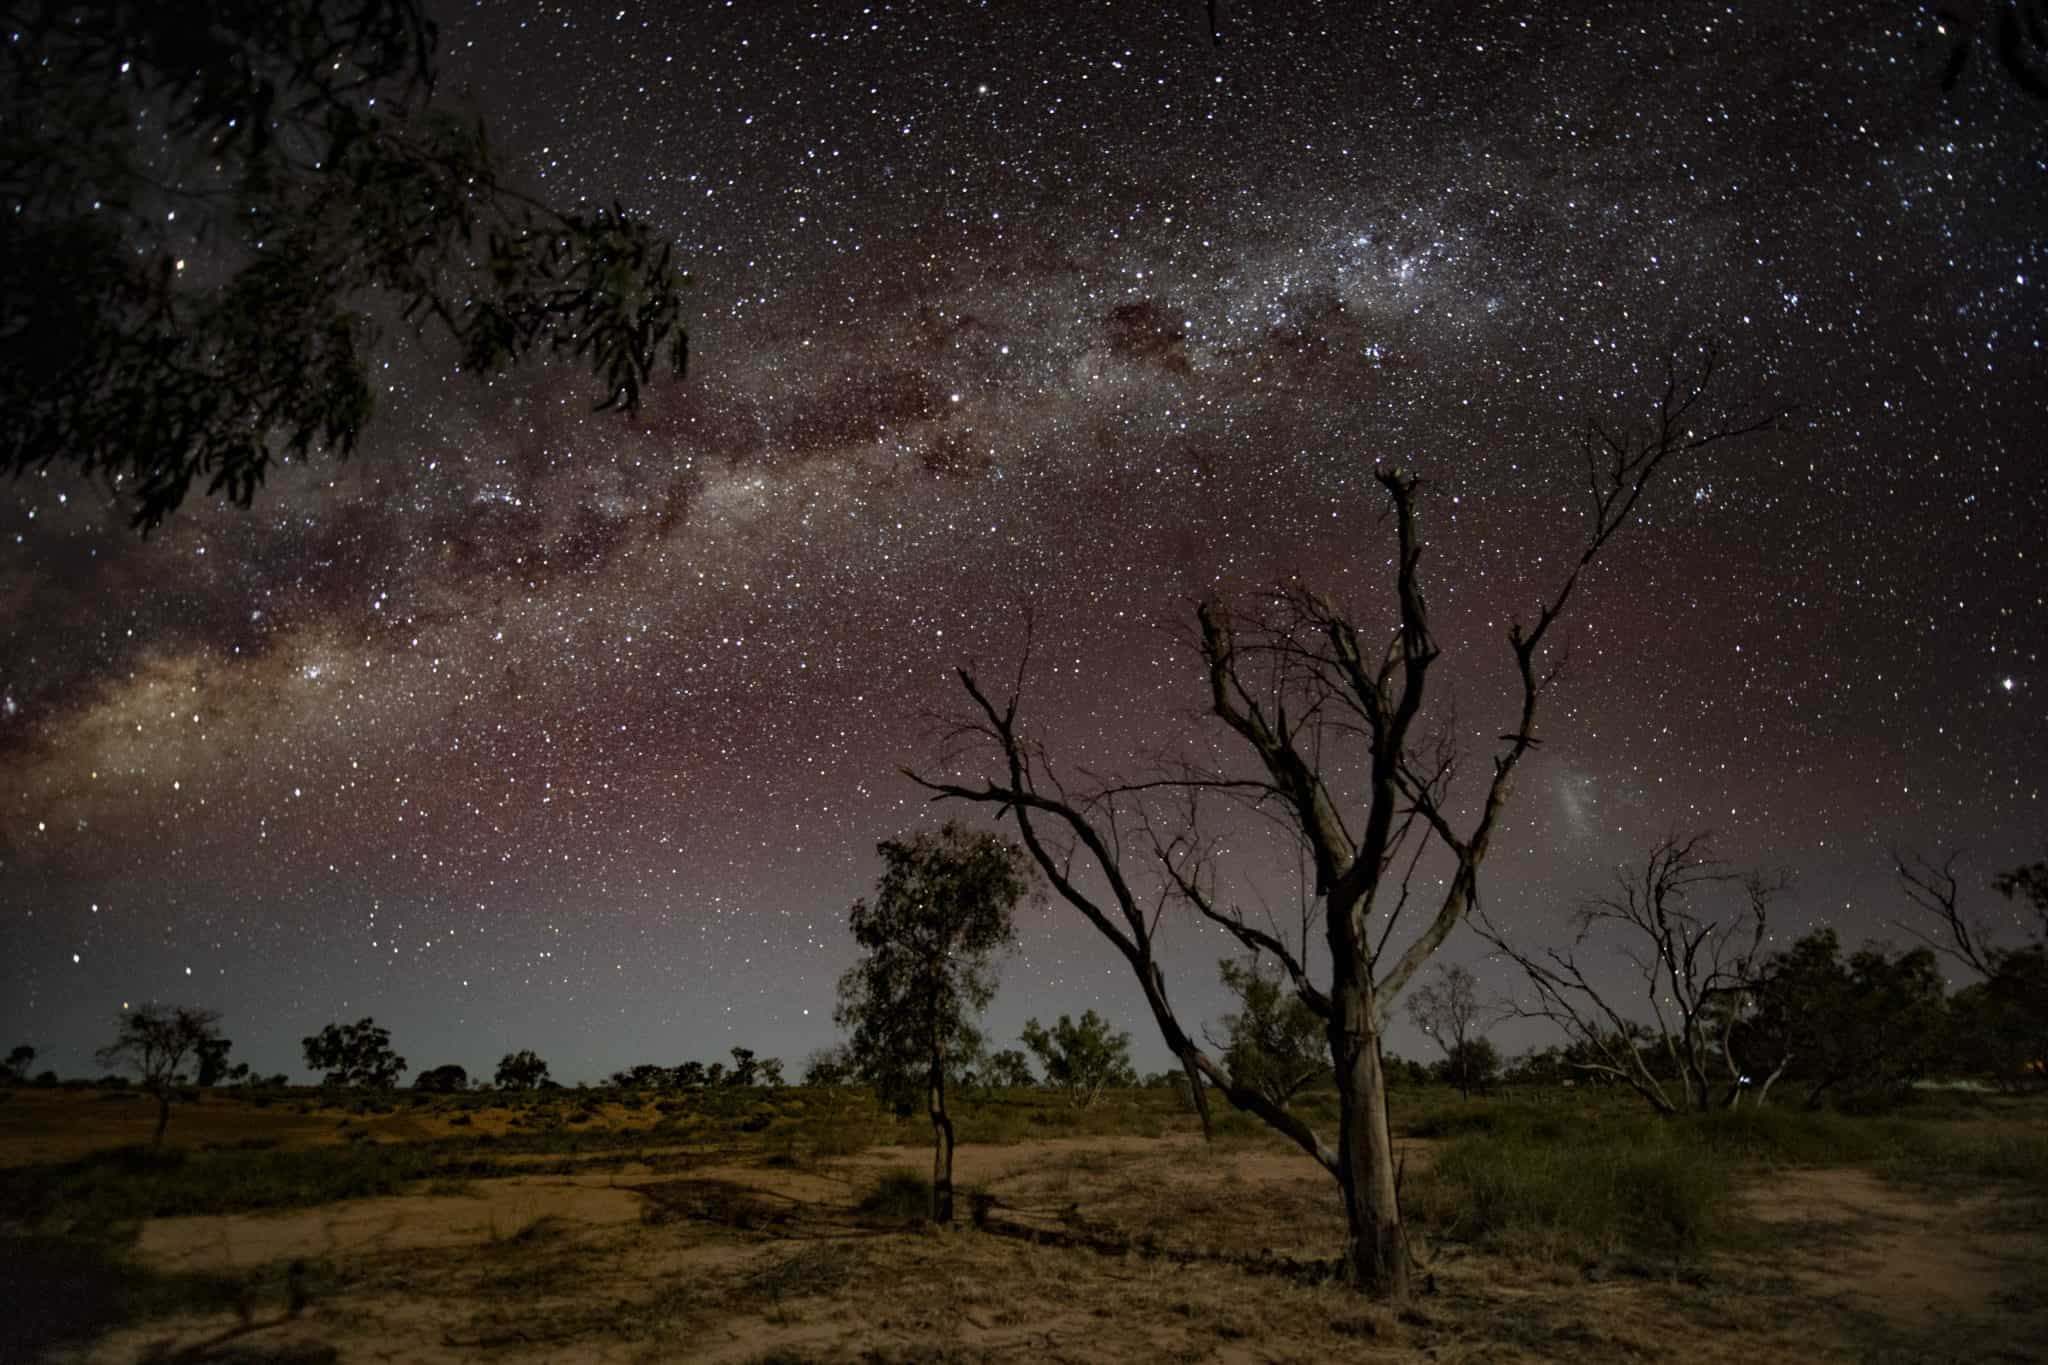 Milky Way viewed in Outback Queensland